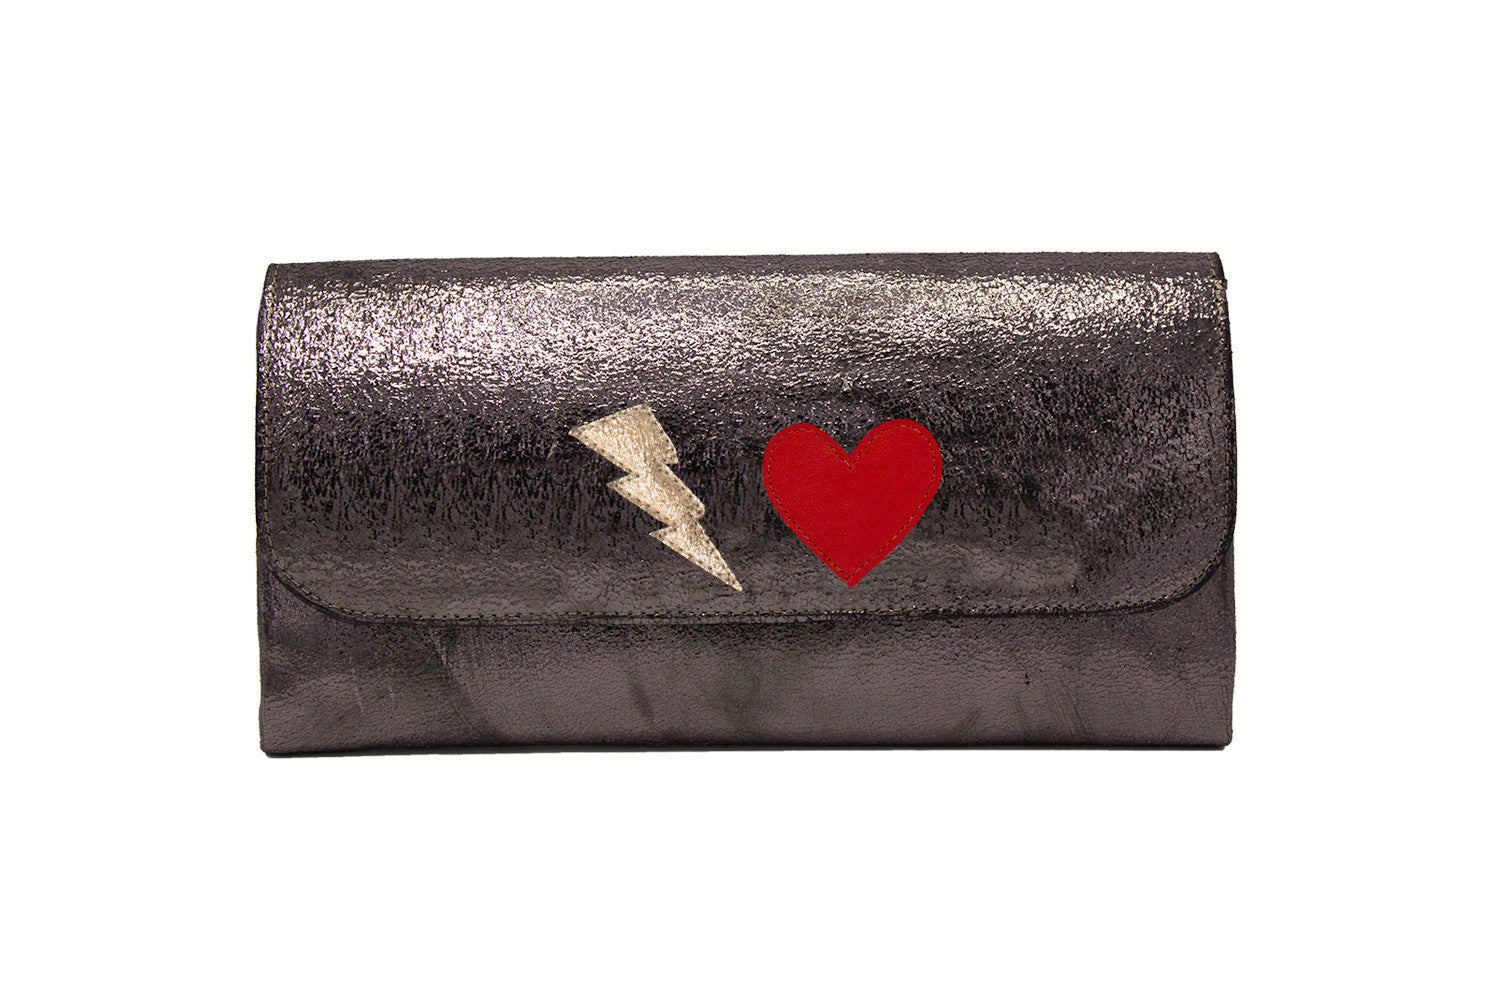 Elle Clutch Cracked Bronze Patent Leather w/ Gold Bolt and Red Heart